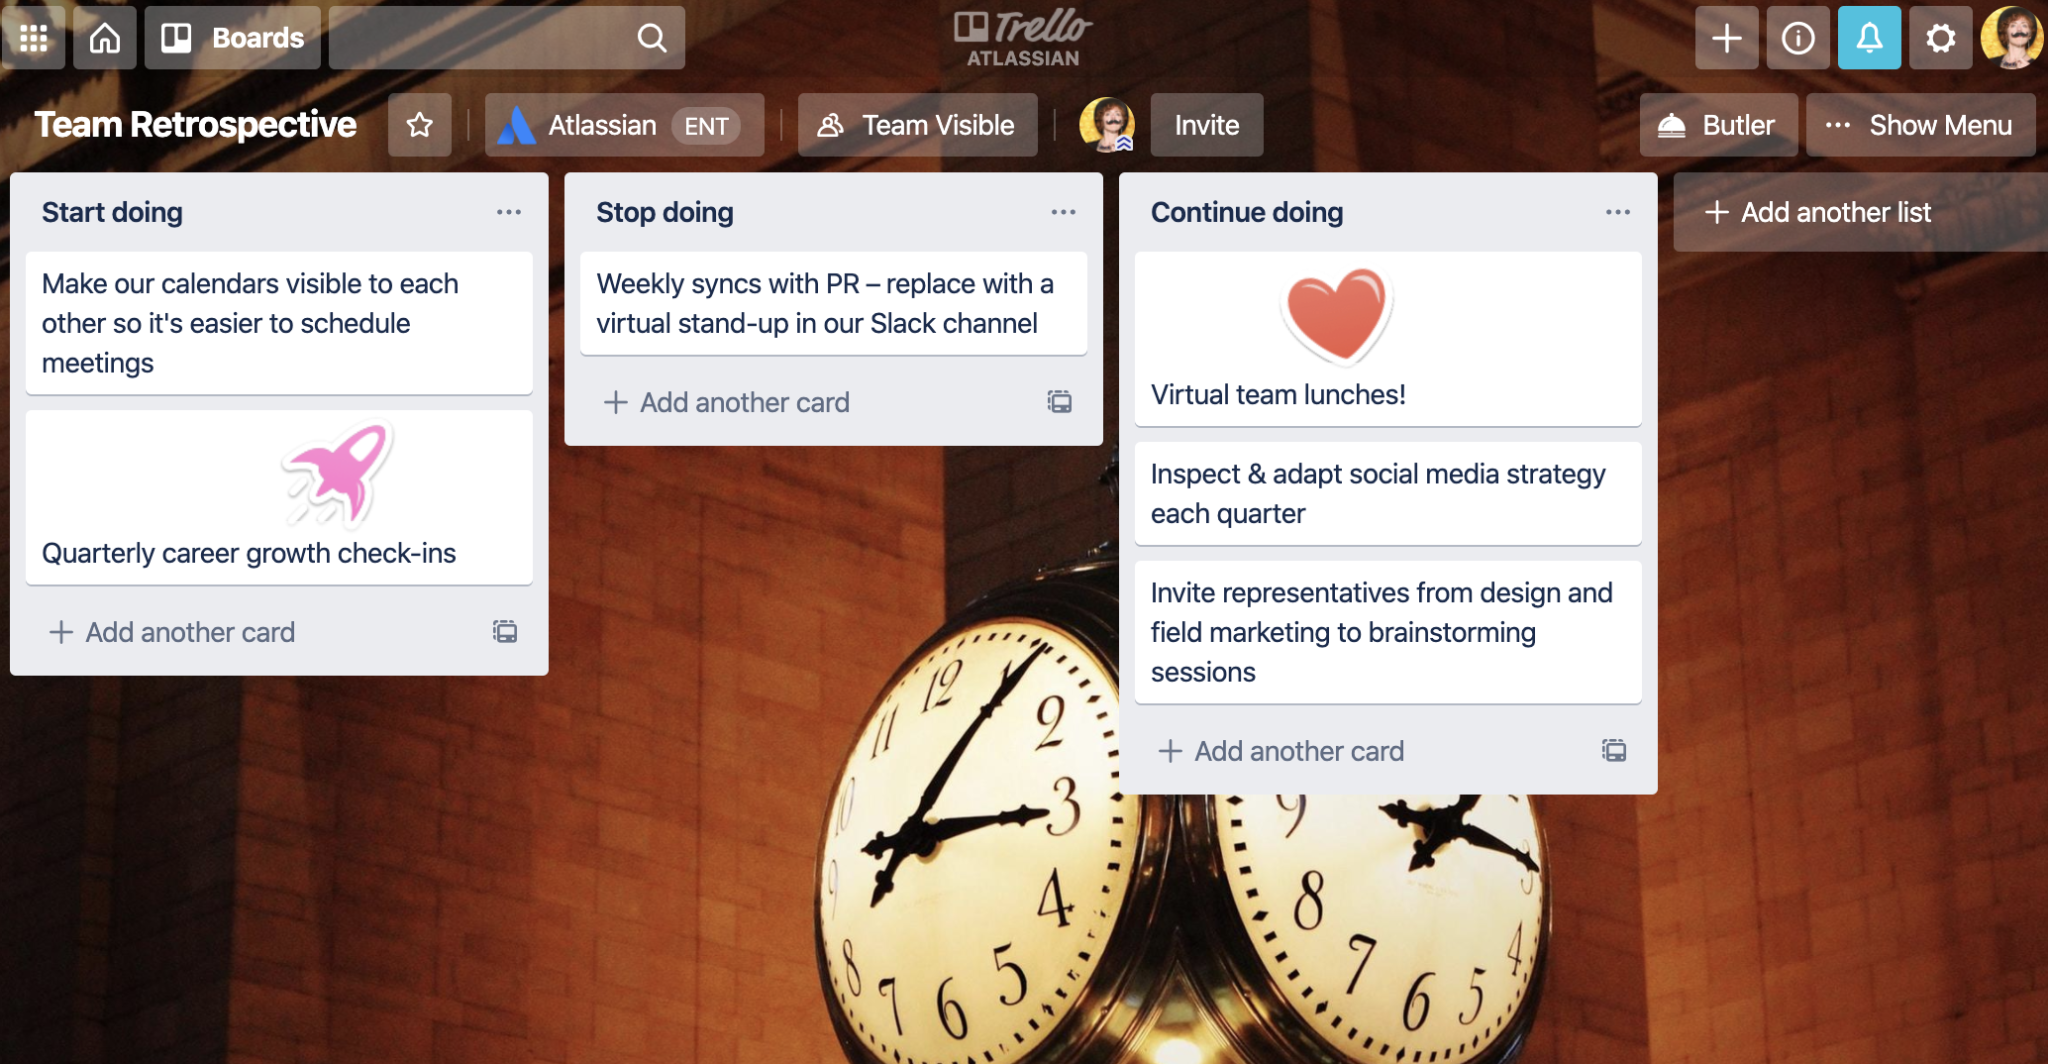 Example of a Trello board with lists for things to stop, start, and continue doing